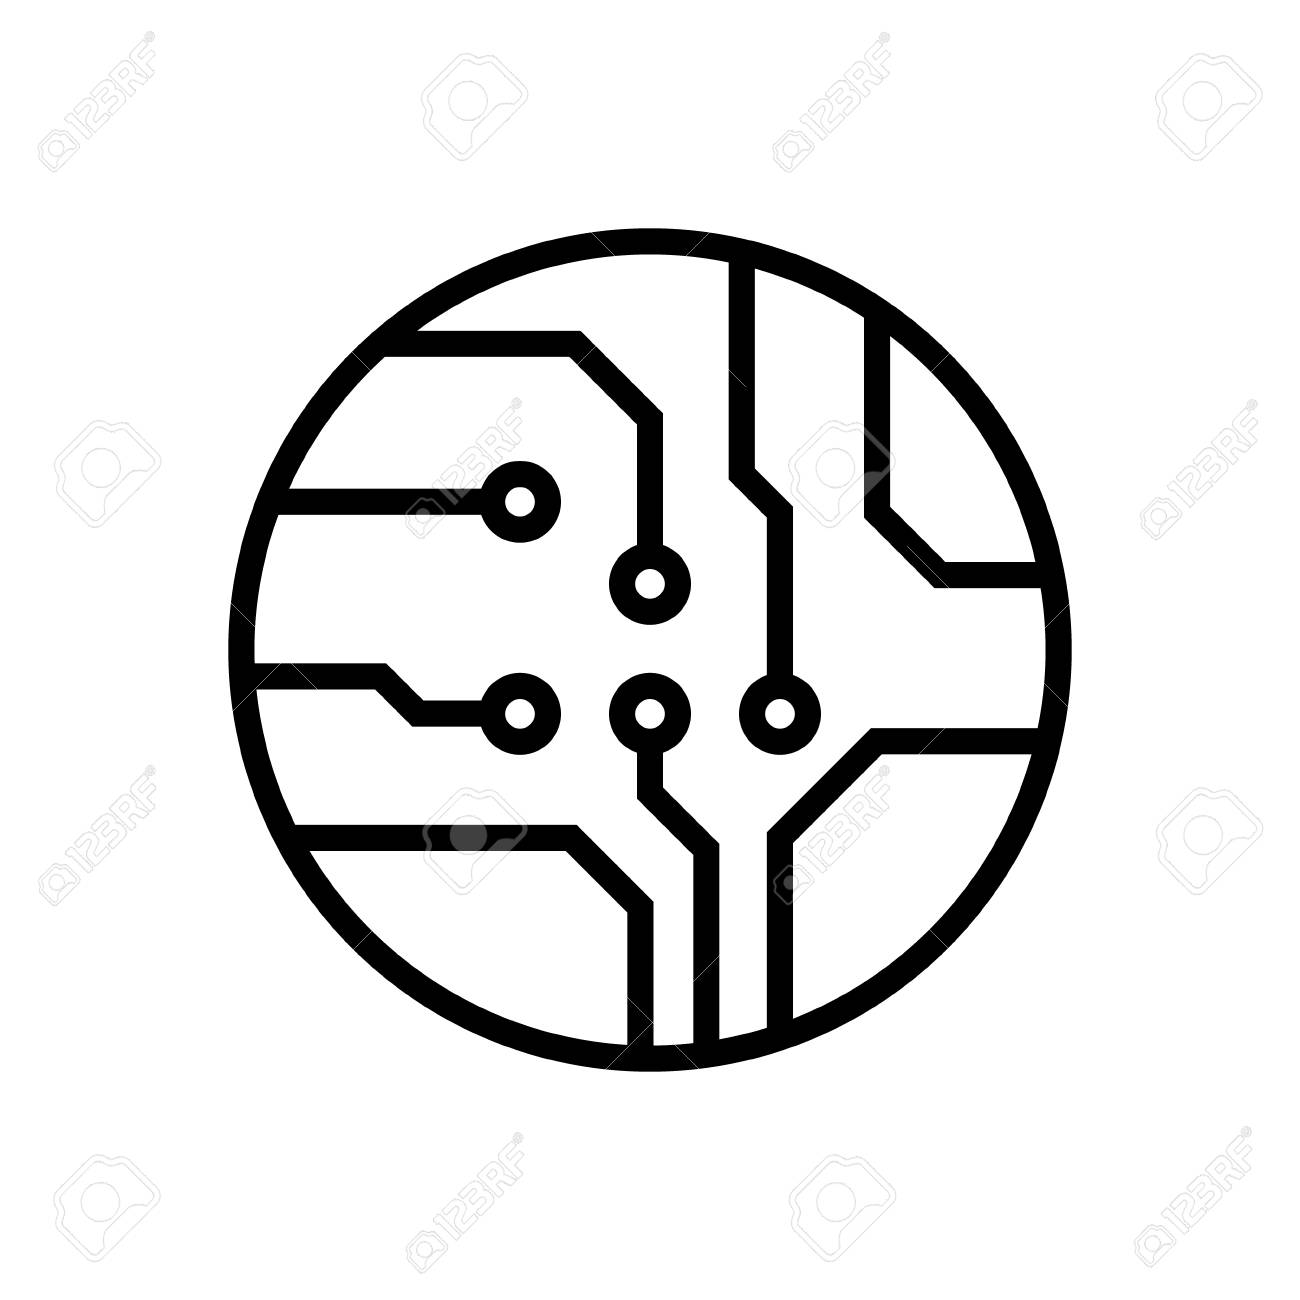 Circuit board, technology vector icon  For your web site design,